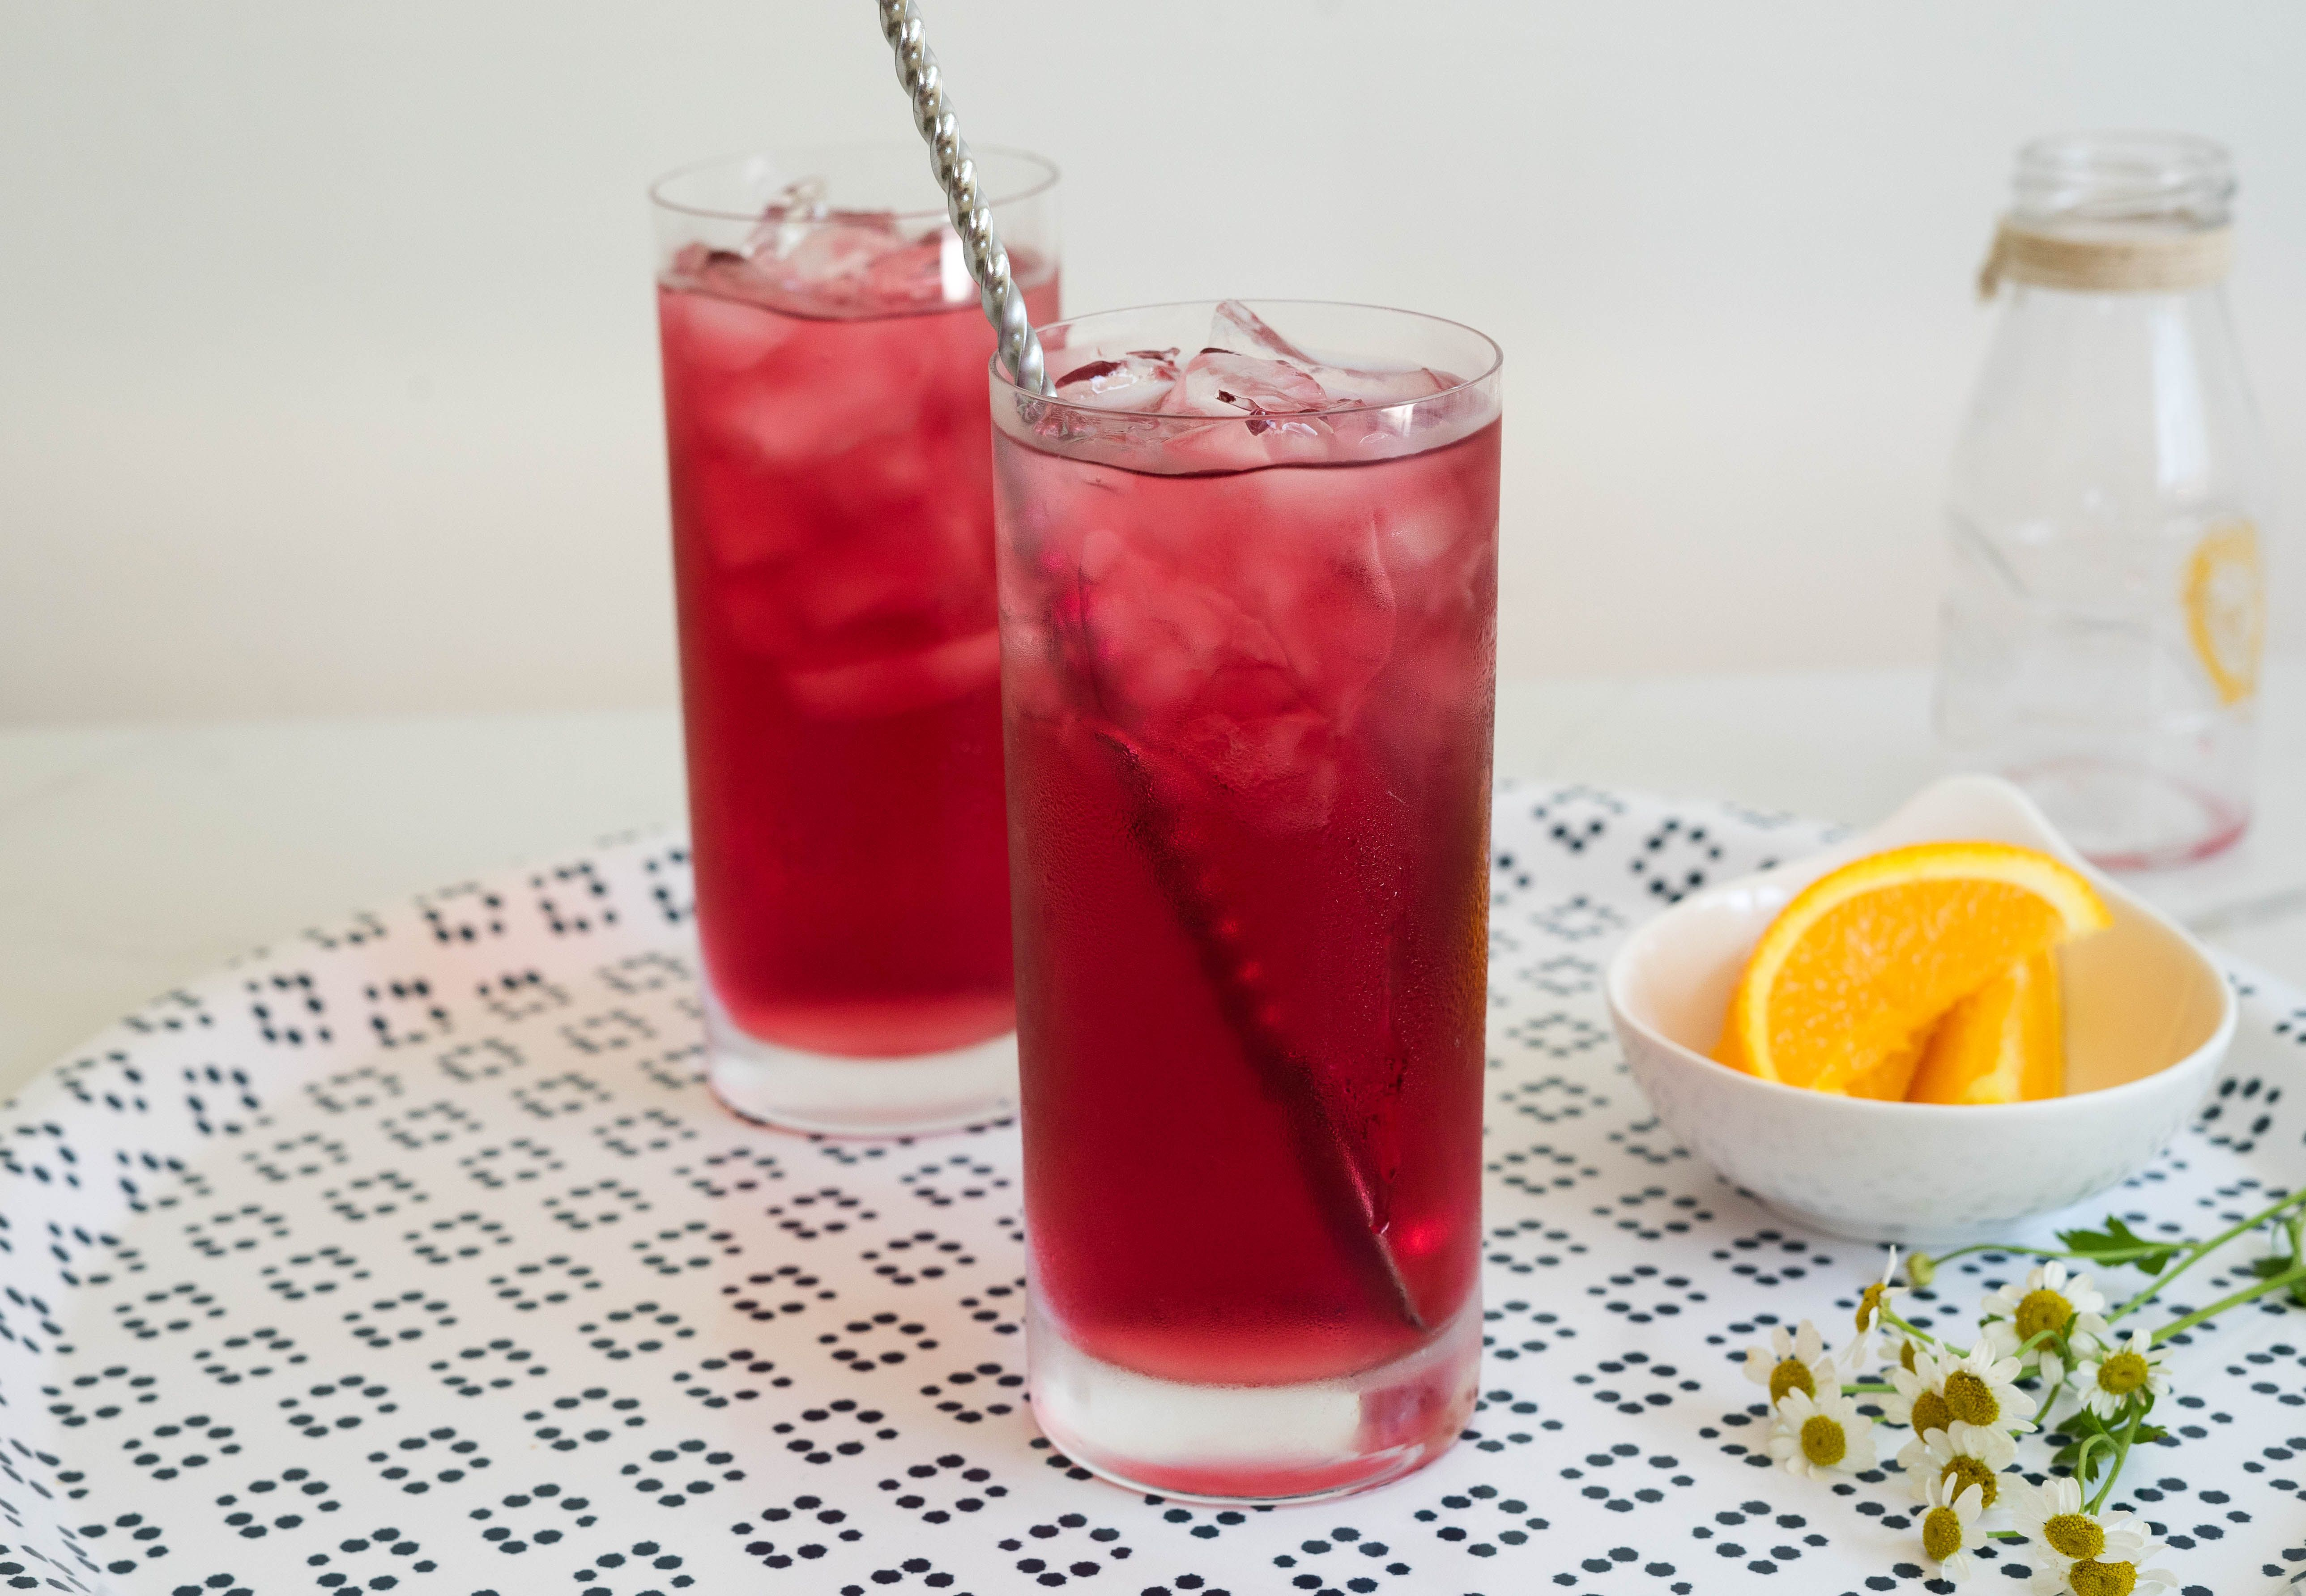 Top vodka with cranberry juice for cocktail.